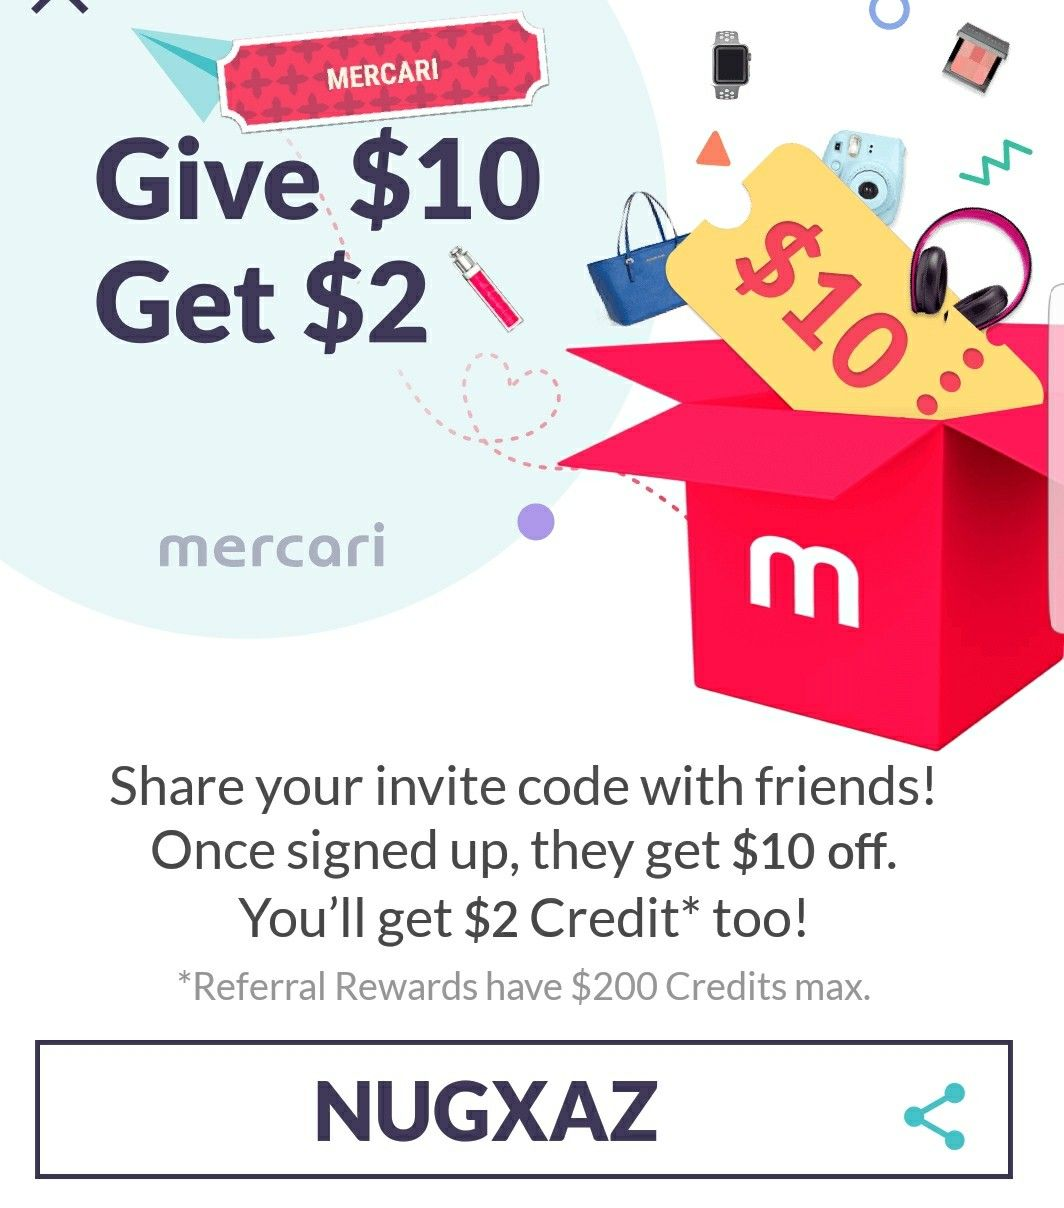 ACTUAL WORKING SIGNUP PROMO CODE TO RECEIVE 10 FREE